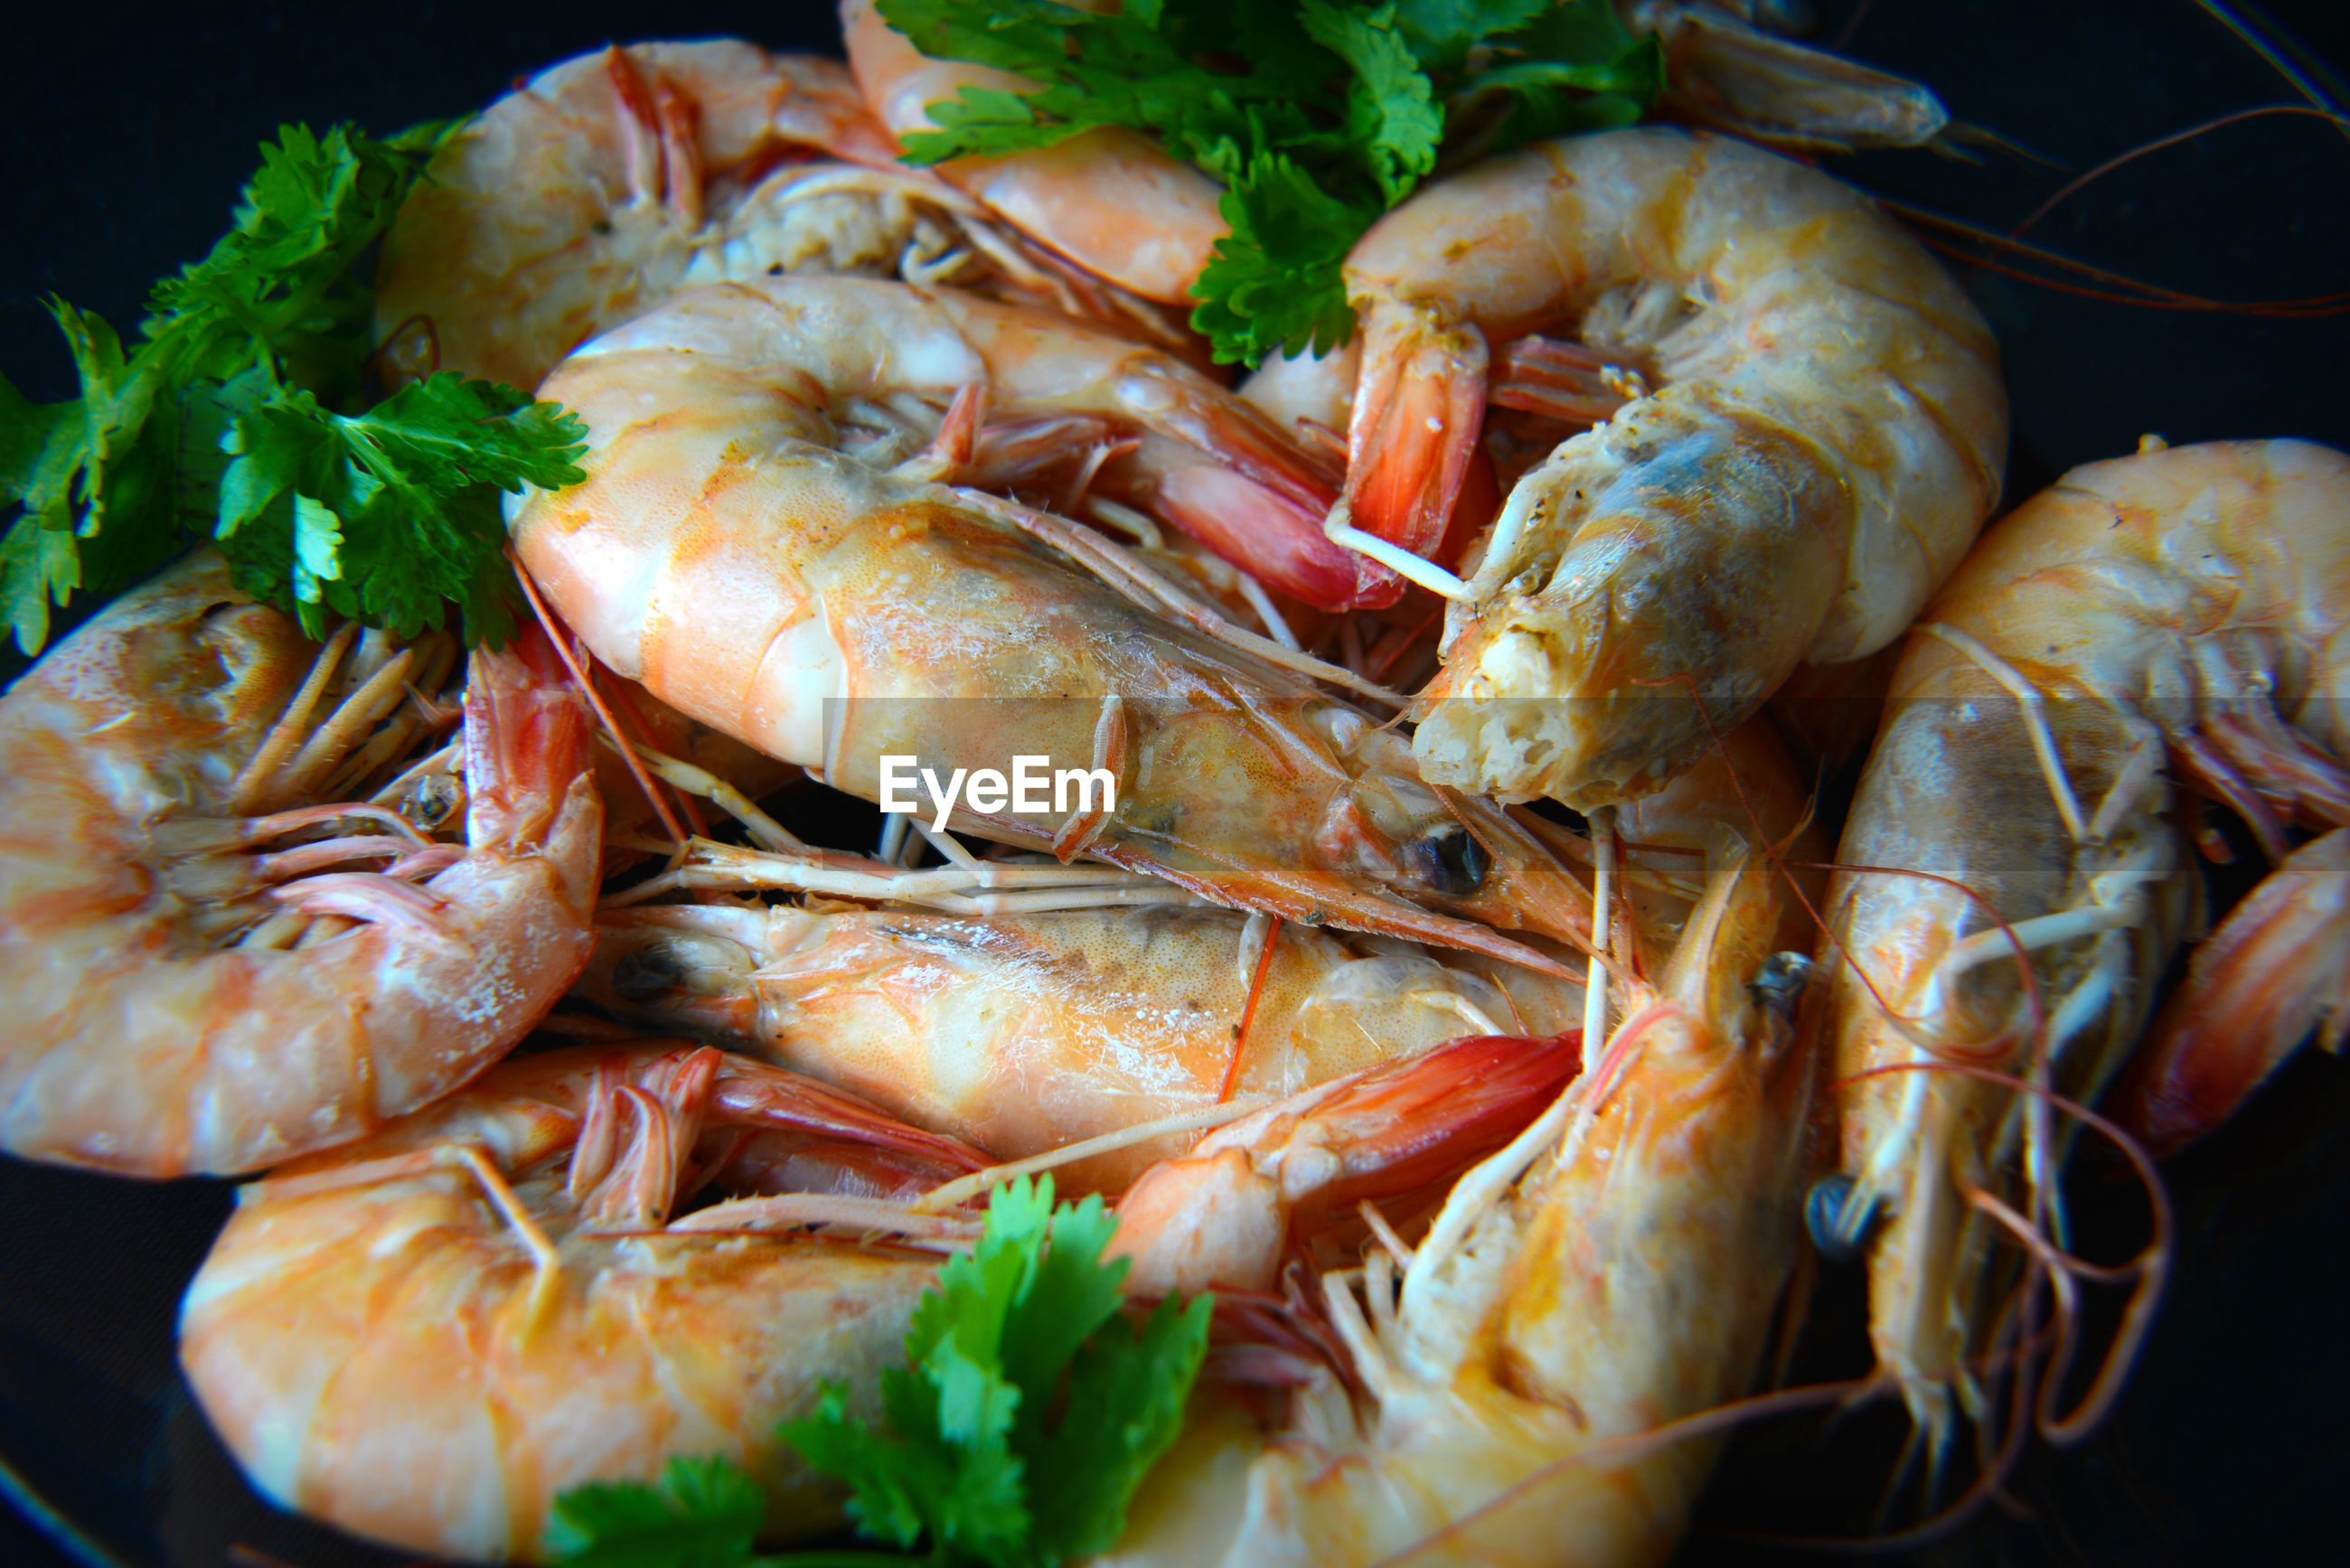 High angle view of shrimps served in plate